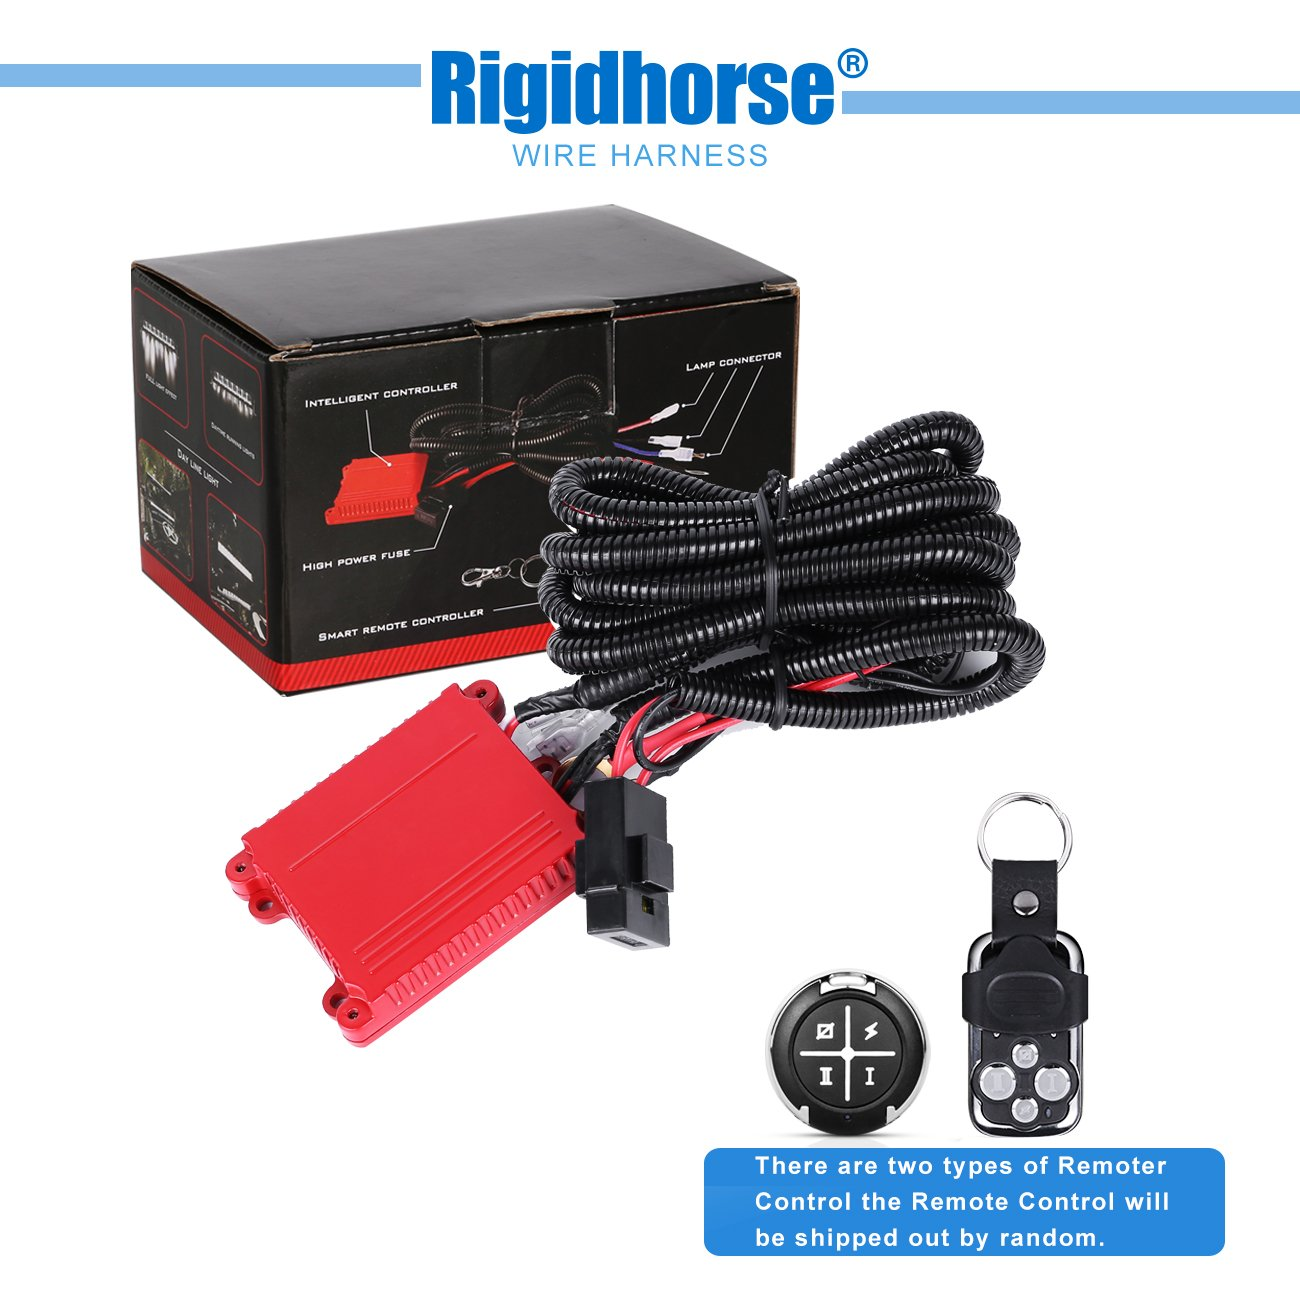 Cheap Led Wiring Harness Find Deals On Line At Opt7 Light Bar Further Get Quotations Rigidhorse Remote Control Kit For 8d Dual Mode